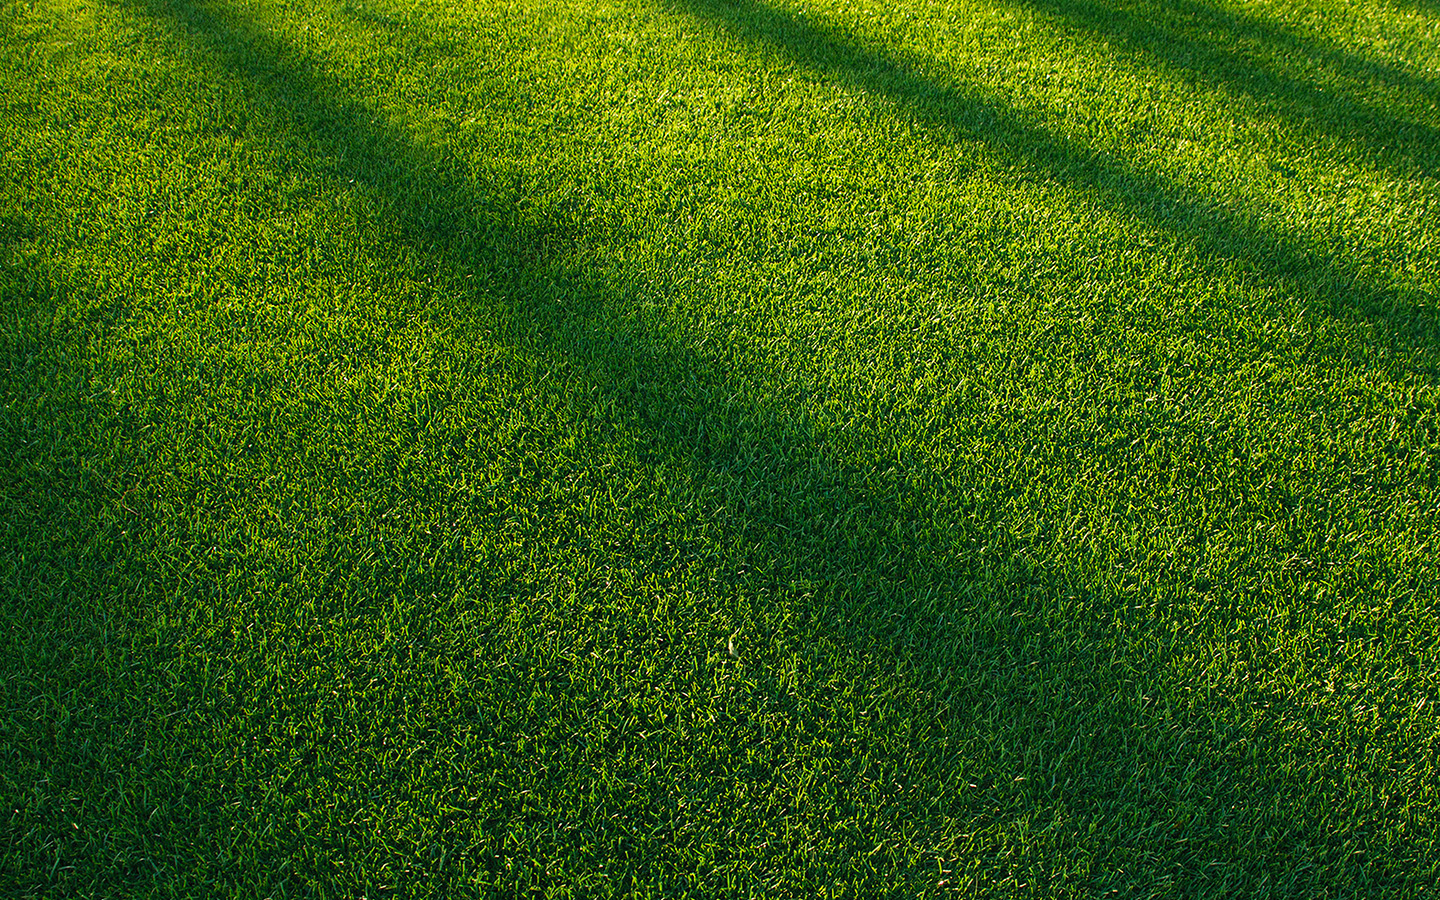 The American Lawn – Our Obsession with Turf Grass